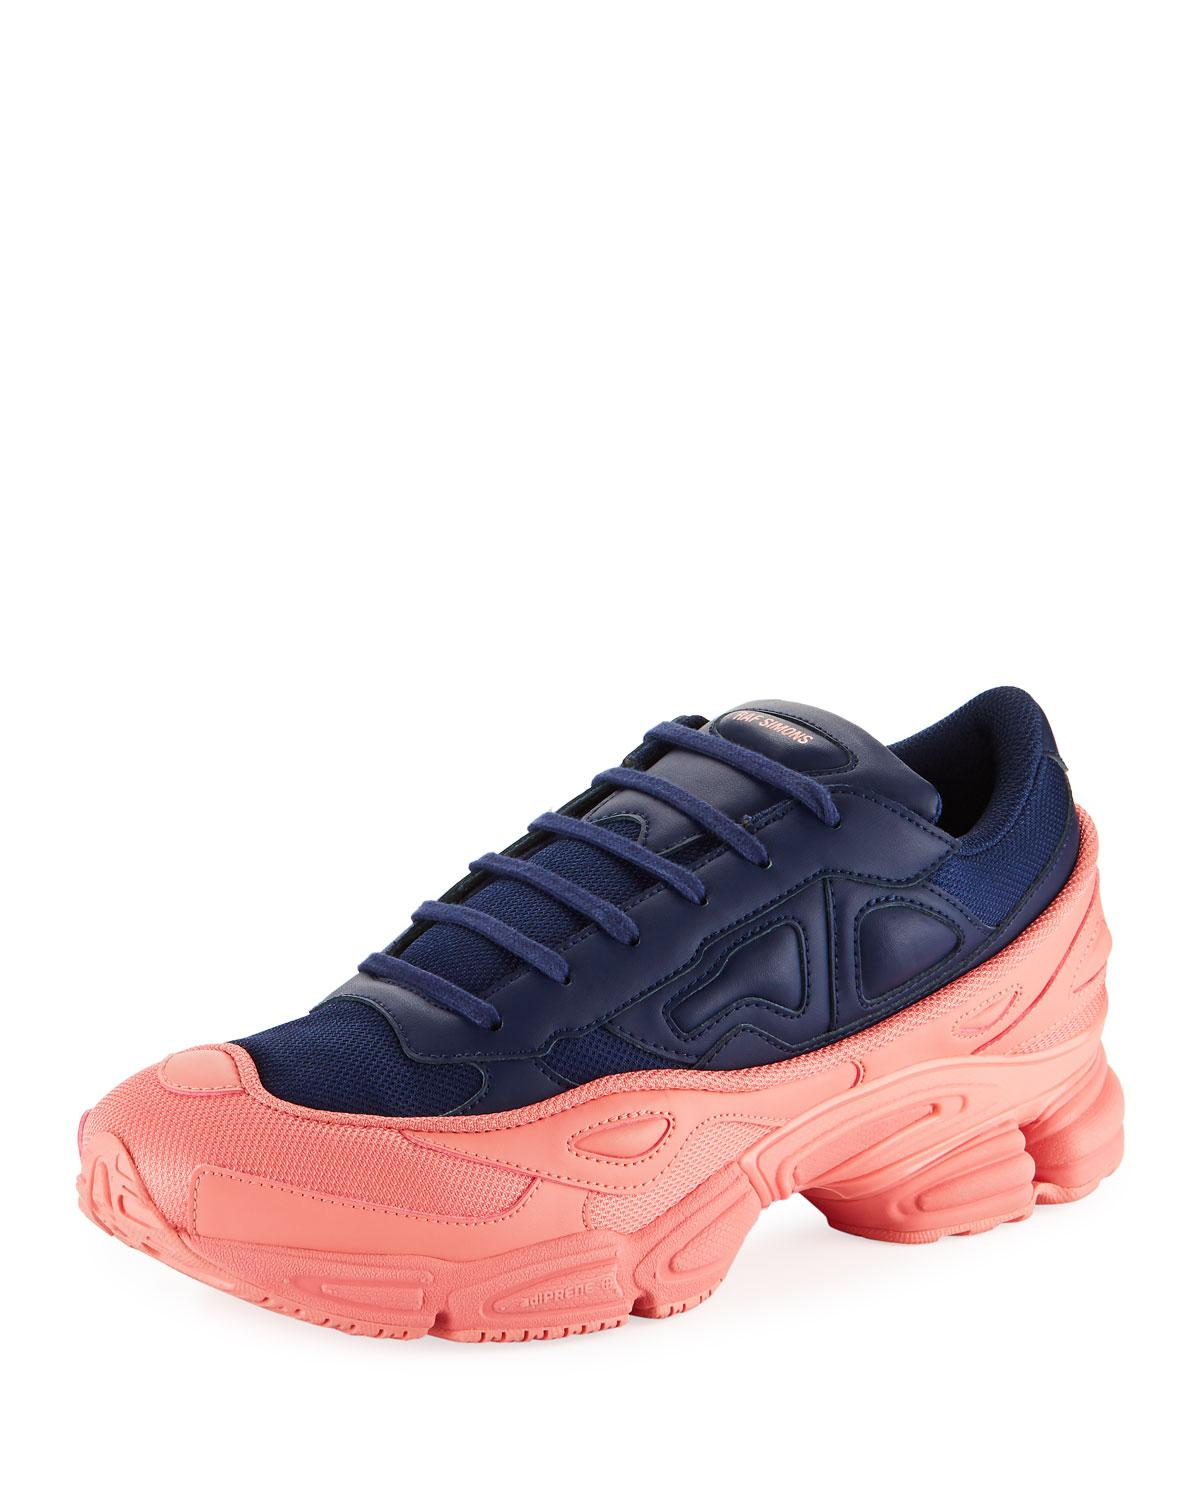 66b4813f68fe73 adidas By Raf Simons. Men s Ozweego Dipped Color Trainer Sneakers Blue pink